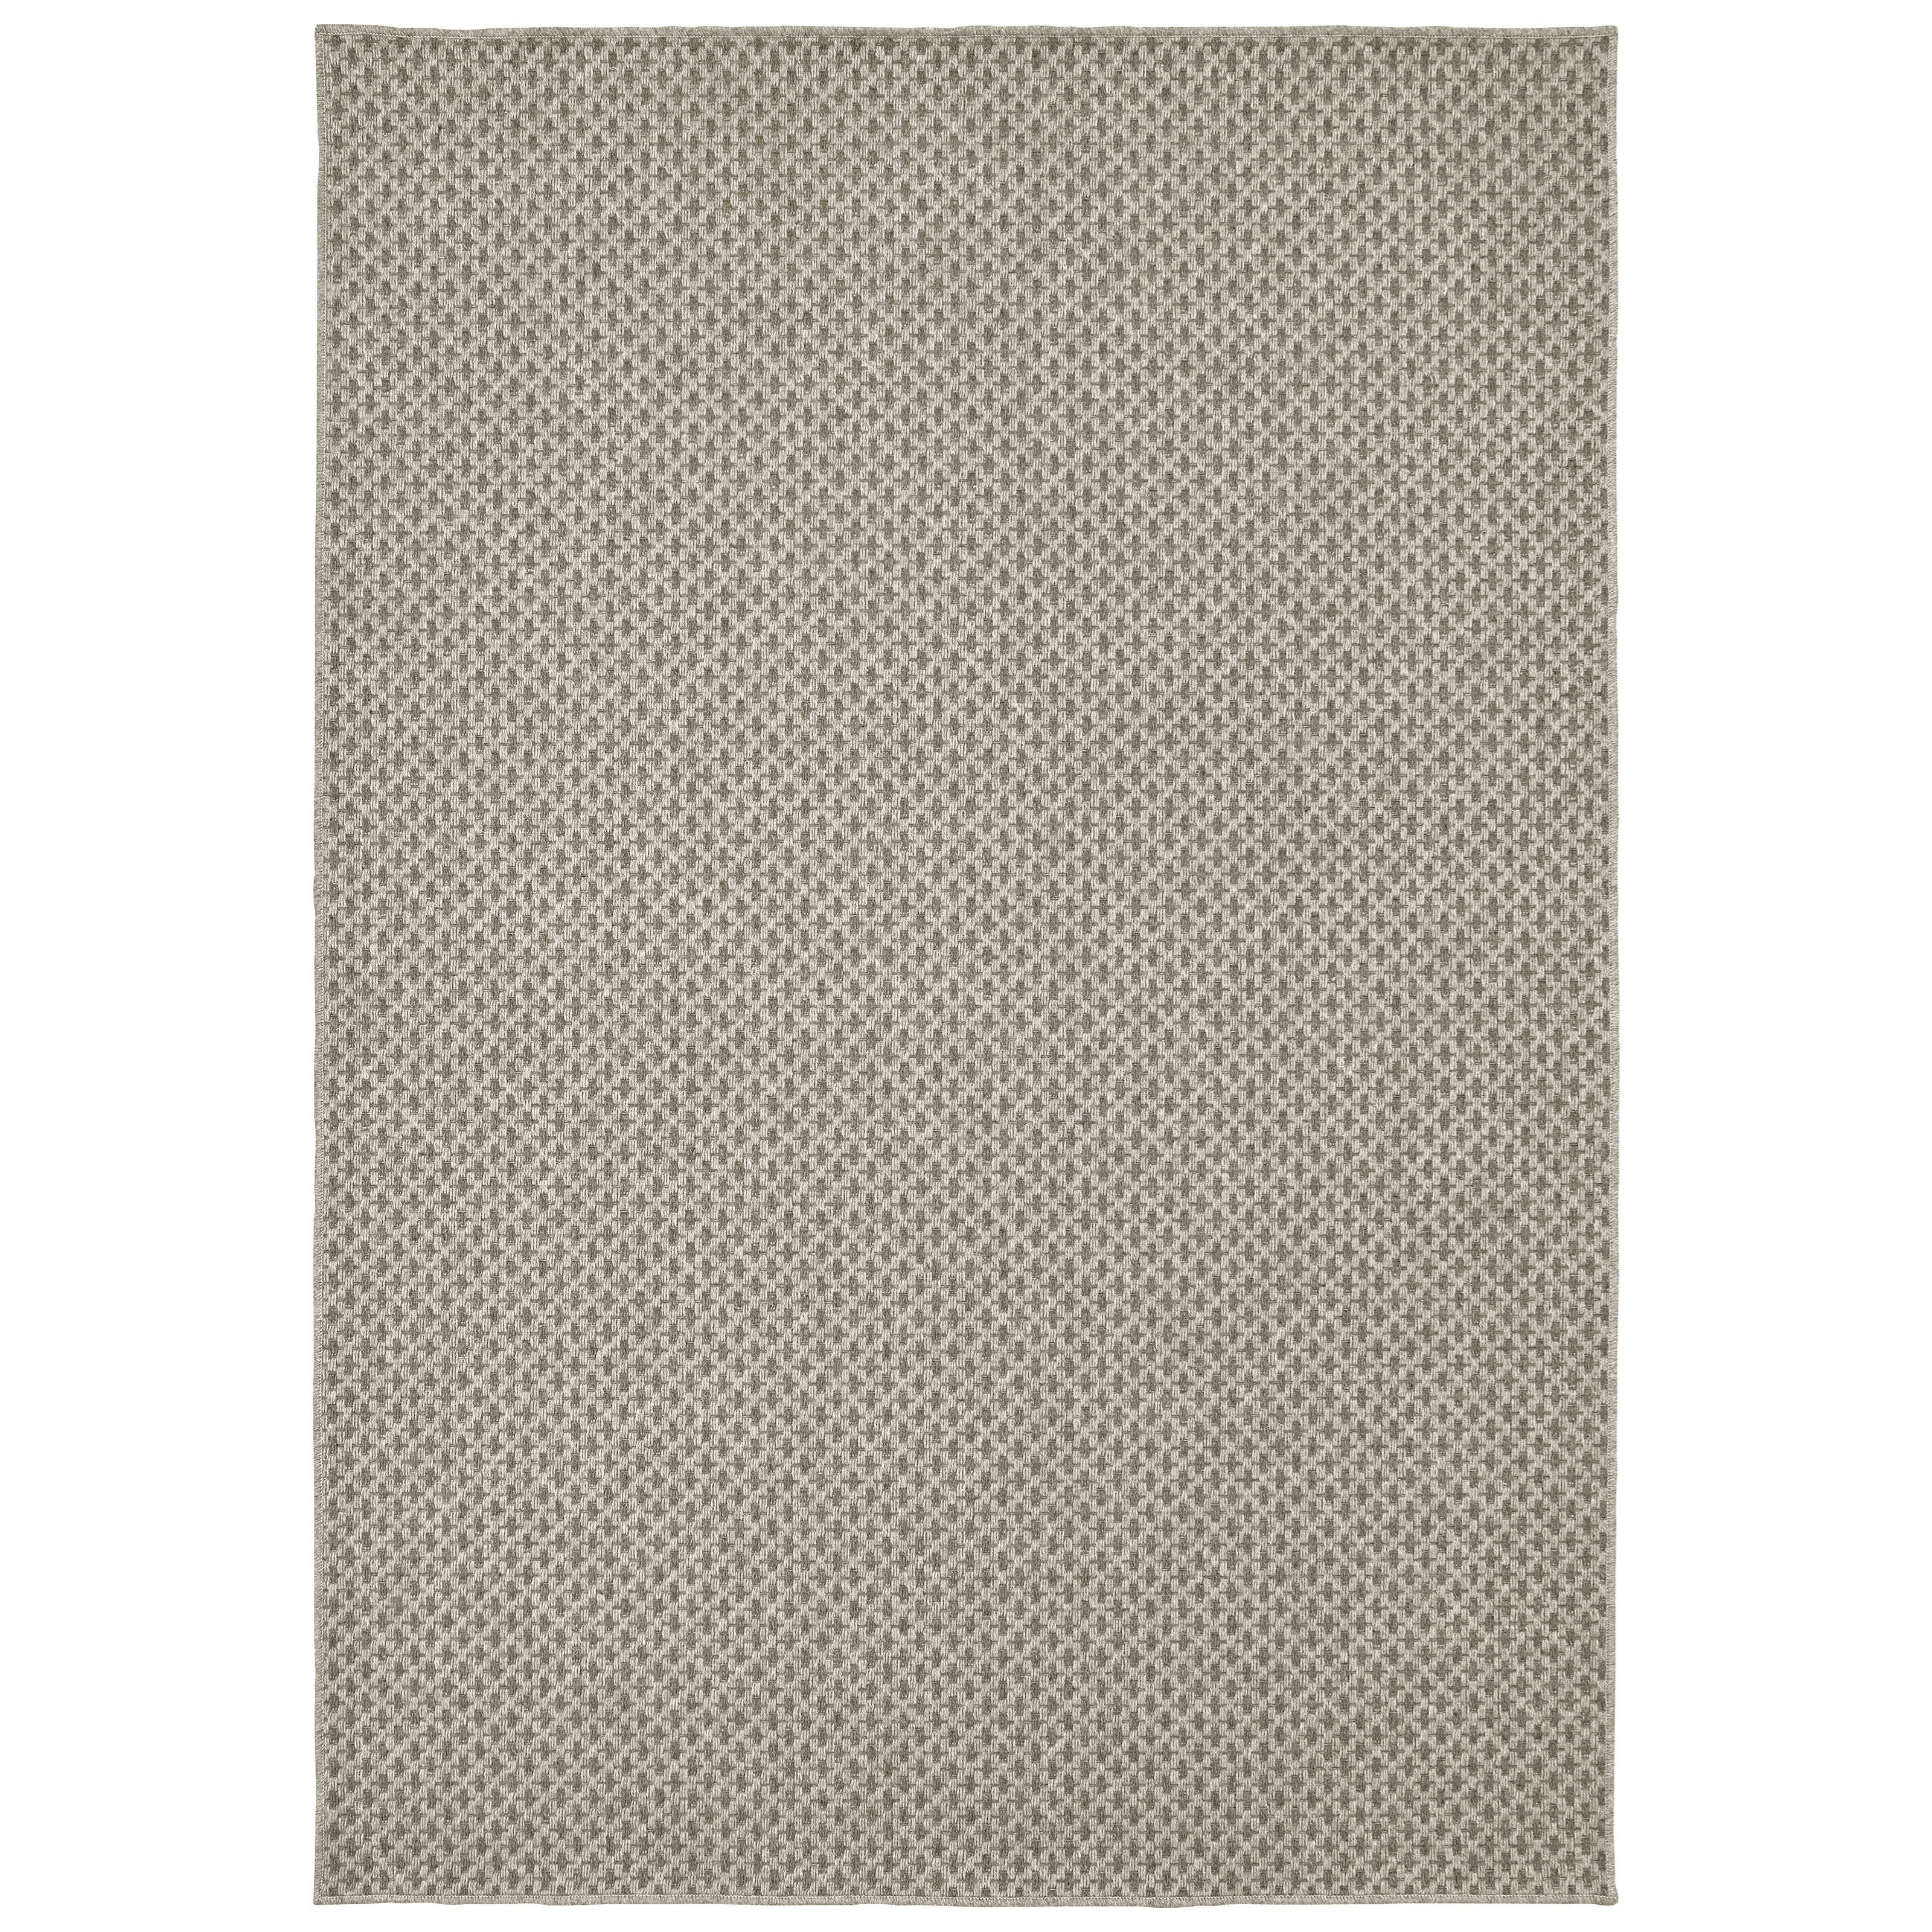 "Boucle 9'10"" X 12'10"" Rectangle Rug by Oriental Weavers at Darvin Furniture"